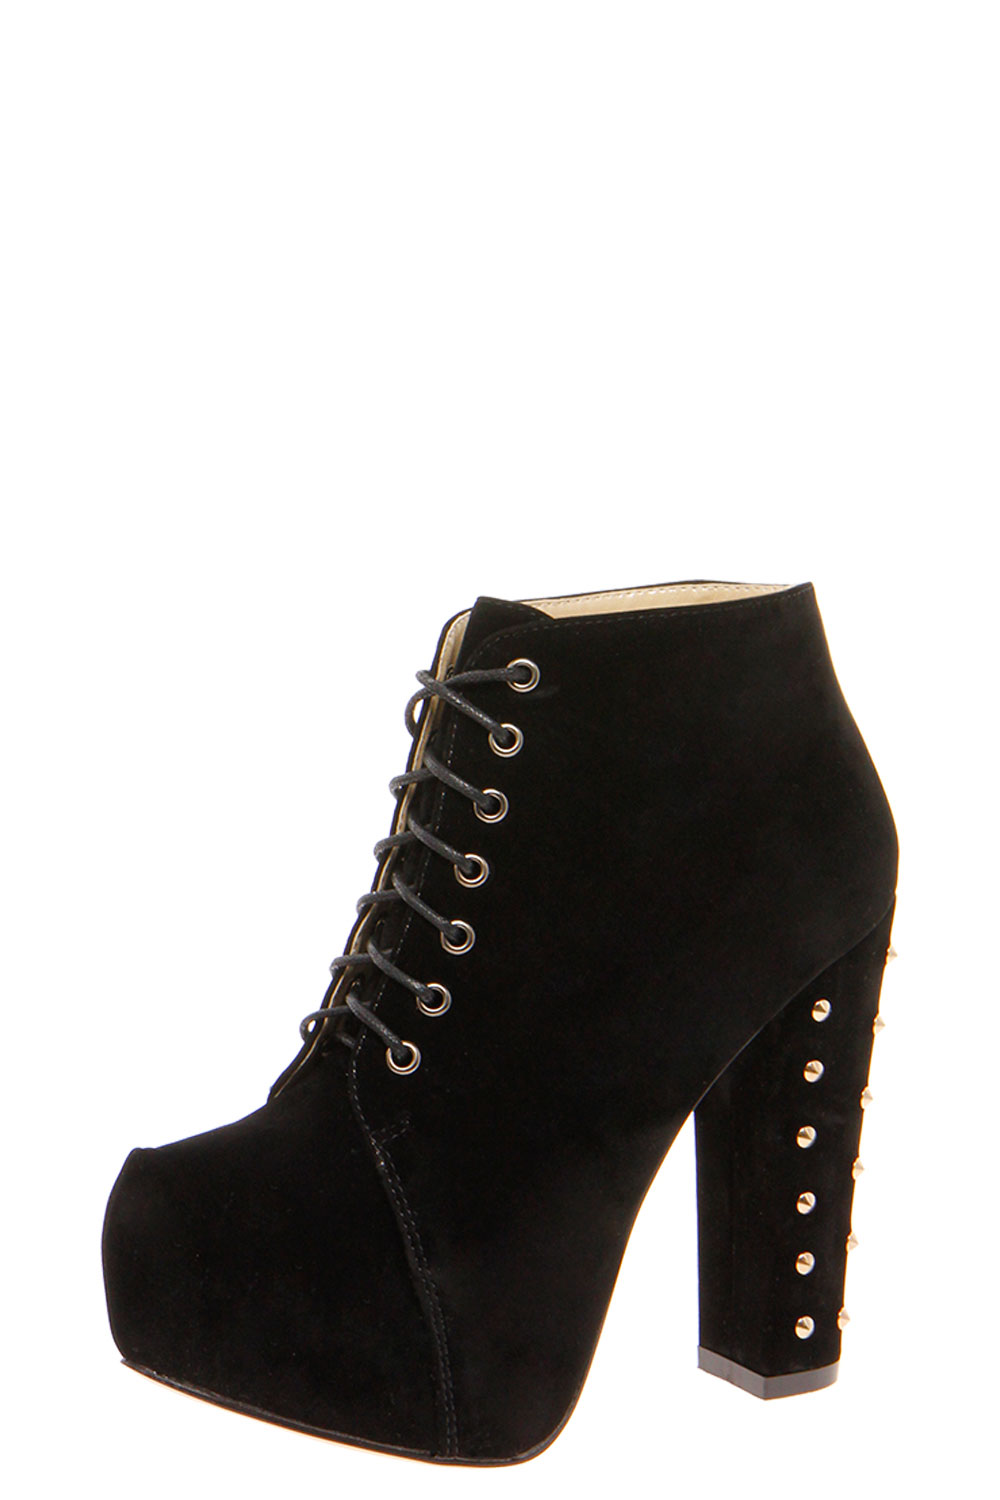 Original Worn With A Flat Heel Bootie, Some Cute Boot Cuffs, And A Leather Jacket  If You